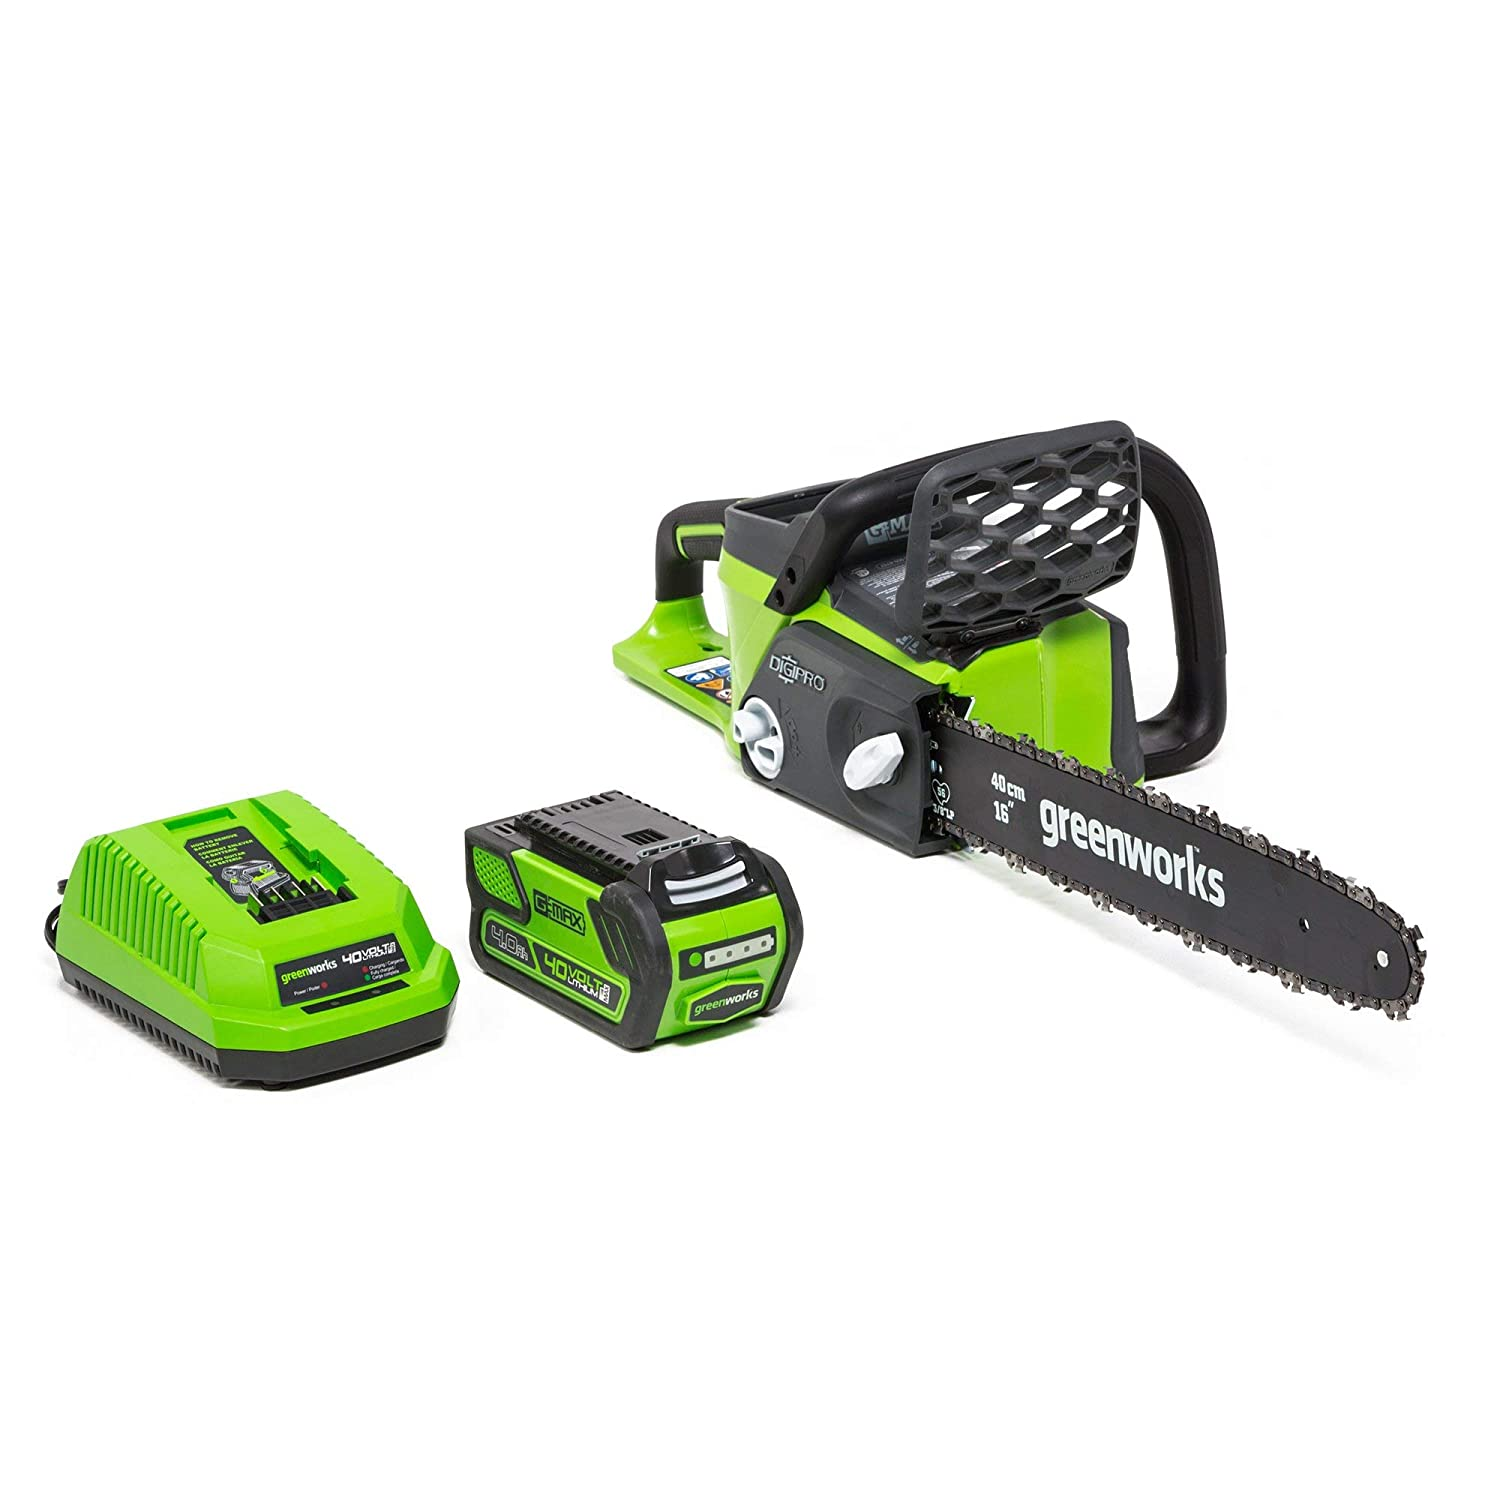 Greenworks 16-Inch 40V Cordless Chainsaw, 4.0 AH Battery Included 20312 (Renewed)